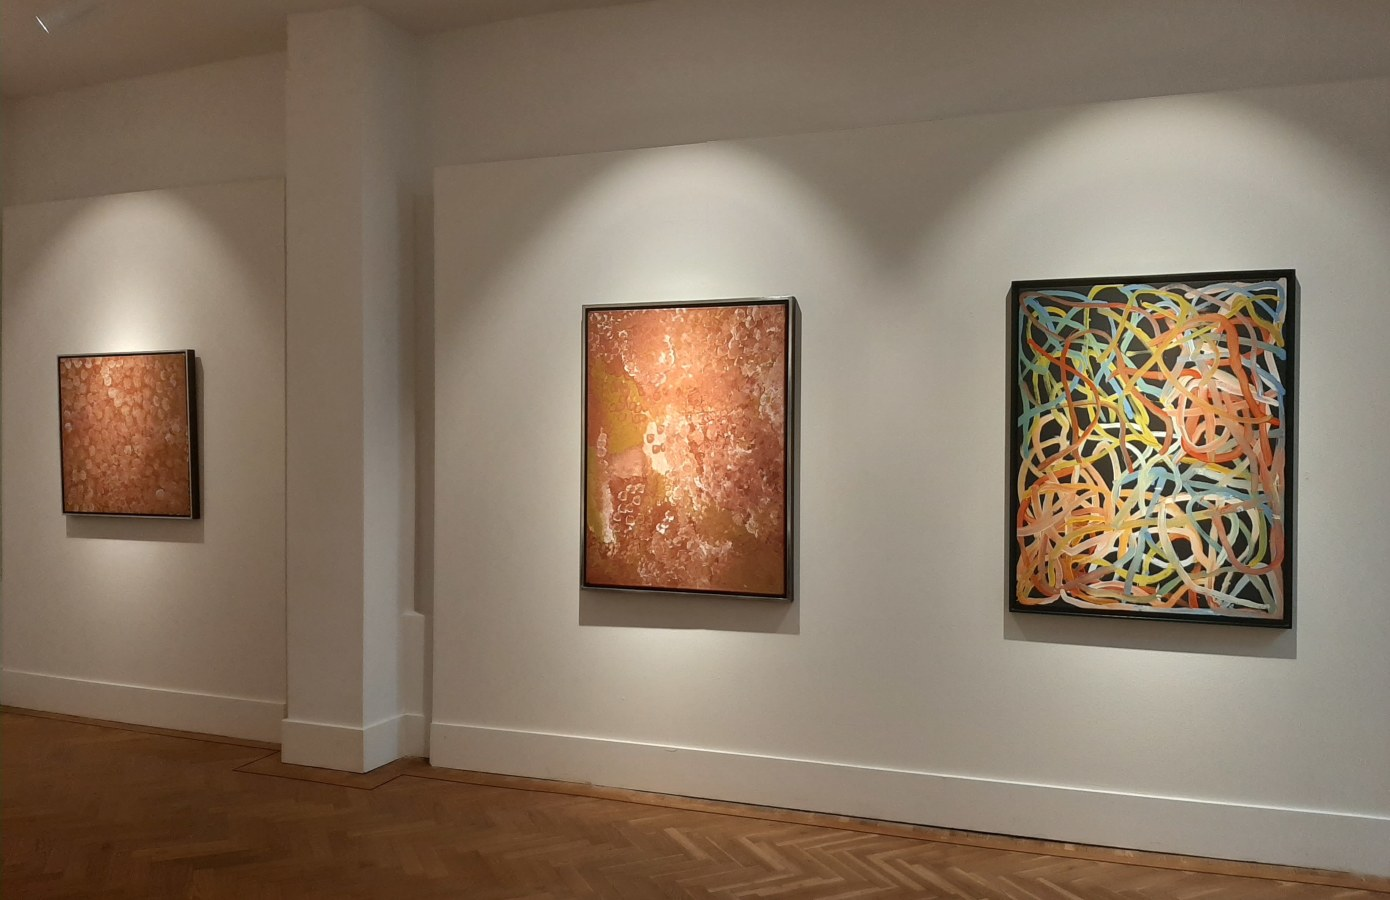 "Origins, Australian Aboriginal Art, ""Mrs. Bennett"", Sarrita & Tarisse King, Emily Kame Kngwarreye, Kudditji Kngwarreye, Nyanyuma Napangati, Naata Nungurrayi, Angelina Ngale Pwerle, Freddie Timms, Ronnie Tjampitjina, Warlimpirrnga Tjapaltjarri, George 'Hairbrush' Tjungu,"